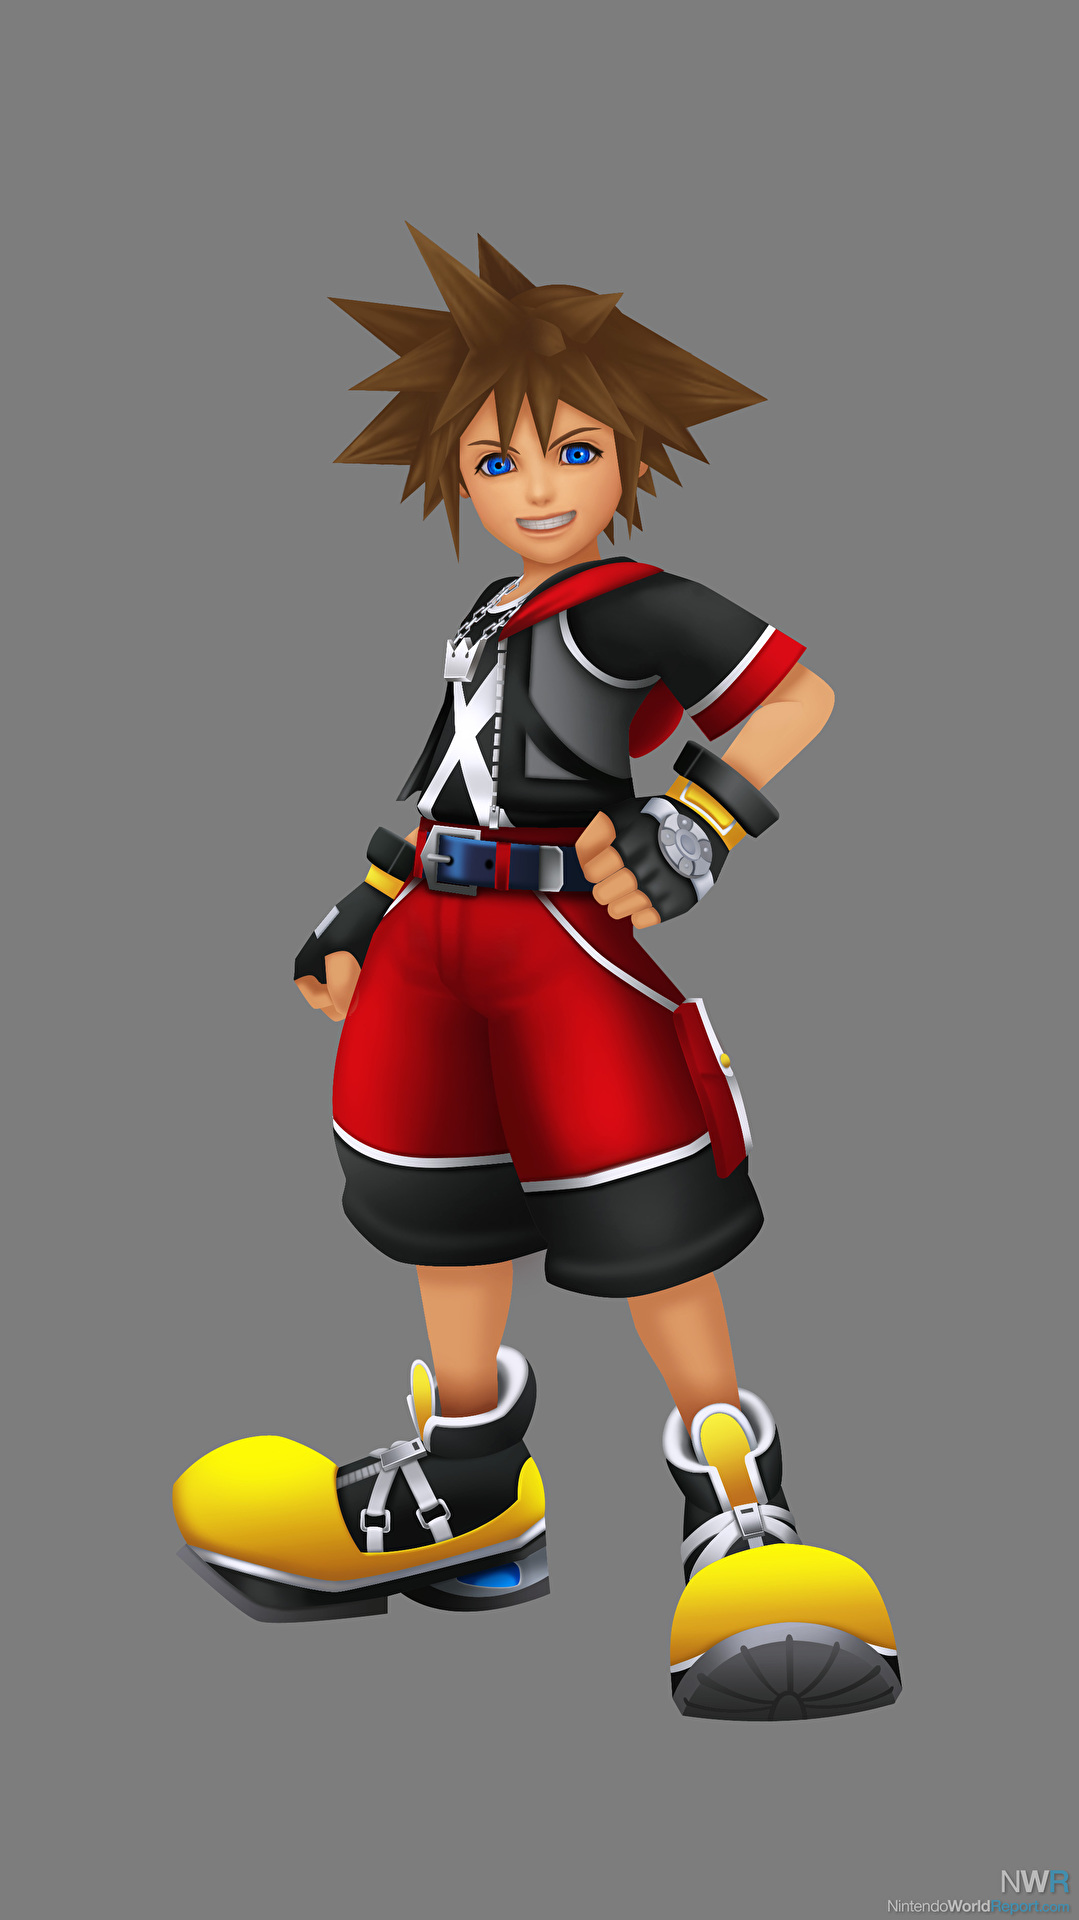 15 Overpowered Kingdom Hearts Characters (And 10 That Are